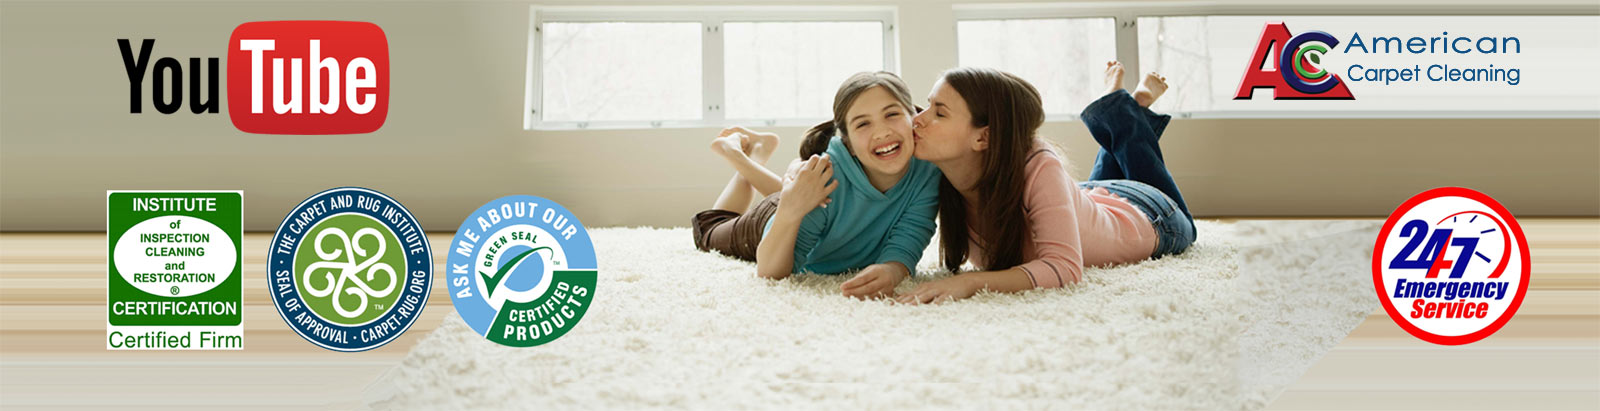 Visit American Carpet Cleaning YouTube Channel for more Carpet Cleaning in Van Nuys | Carpet Cleaning Service in Van Nuys | FREE Carpet Cleaning Quote in Van Nuys, CA | Carpet Cleaning Service in Van Nuys, CA | Carpet Cleaning in Van Nuys, CA | Van Nuys Carpet Cleaning | Carpet Cleaning Service in Thousand Oaks, CA | Carpet Cleaning Service in Simi Valley, CA | Carpet Cleaning Service in San Fernando Valley, CA | Carpet Cleaning Service in Santa Clarita Valley, CA | Carpet Cleaning Service in Ventura, CA | Carpet Cleaning Service in Beverly Hills, CA | Carpet Cleaning Service in Malibu, CA